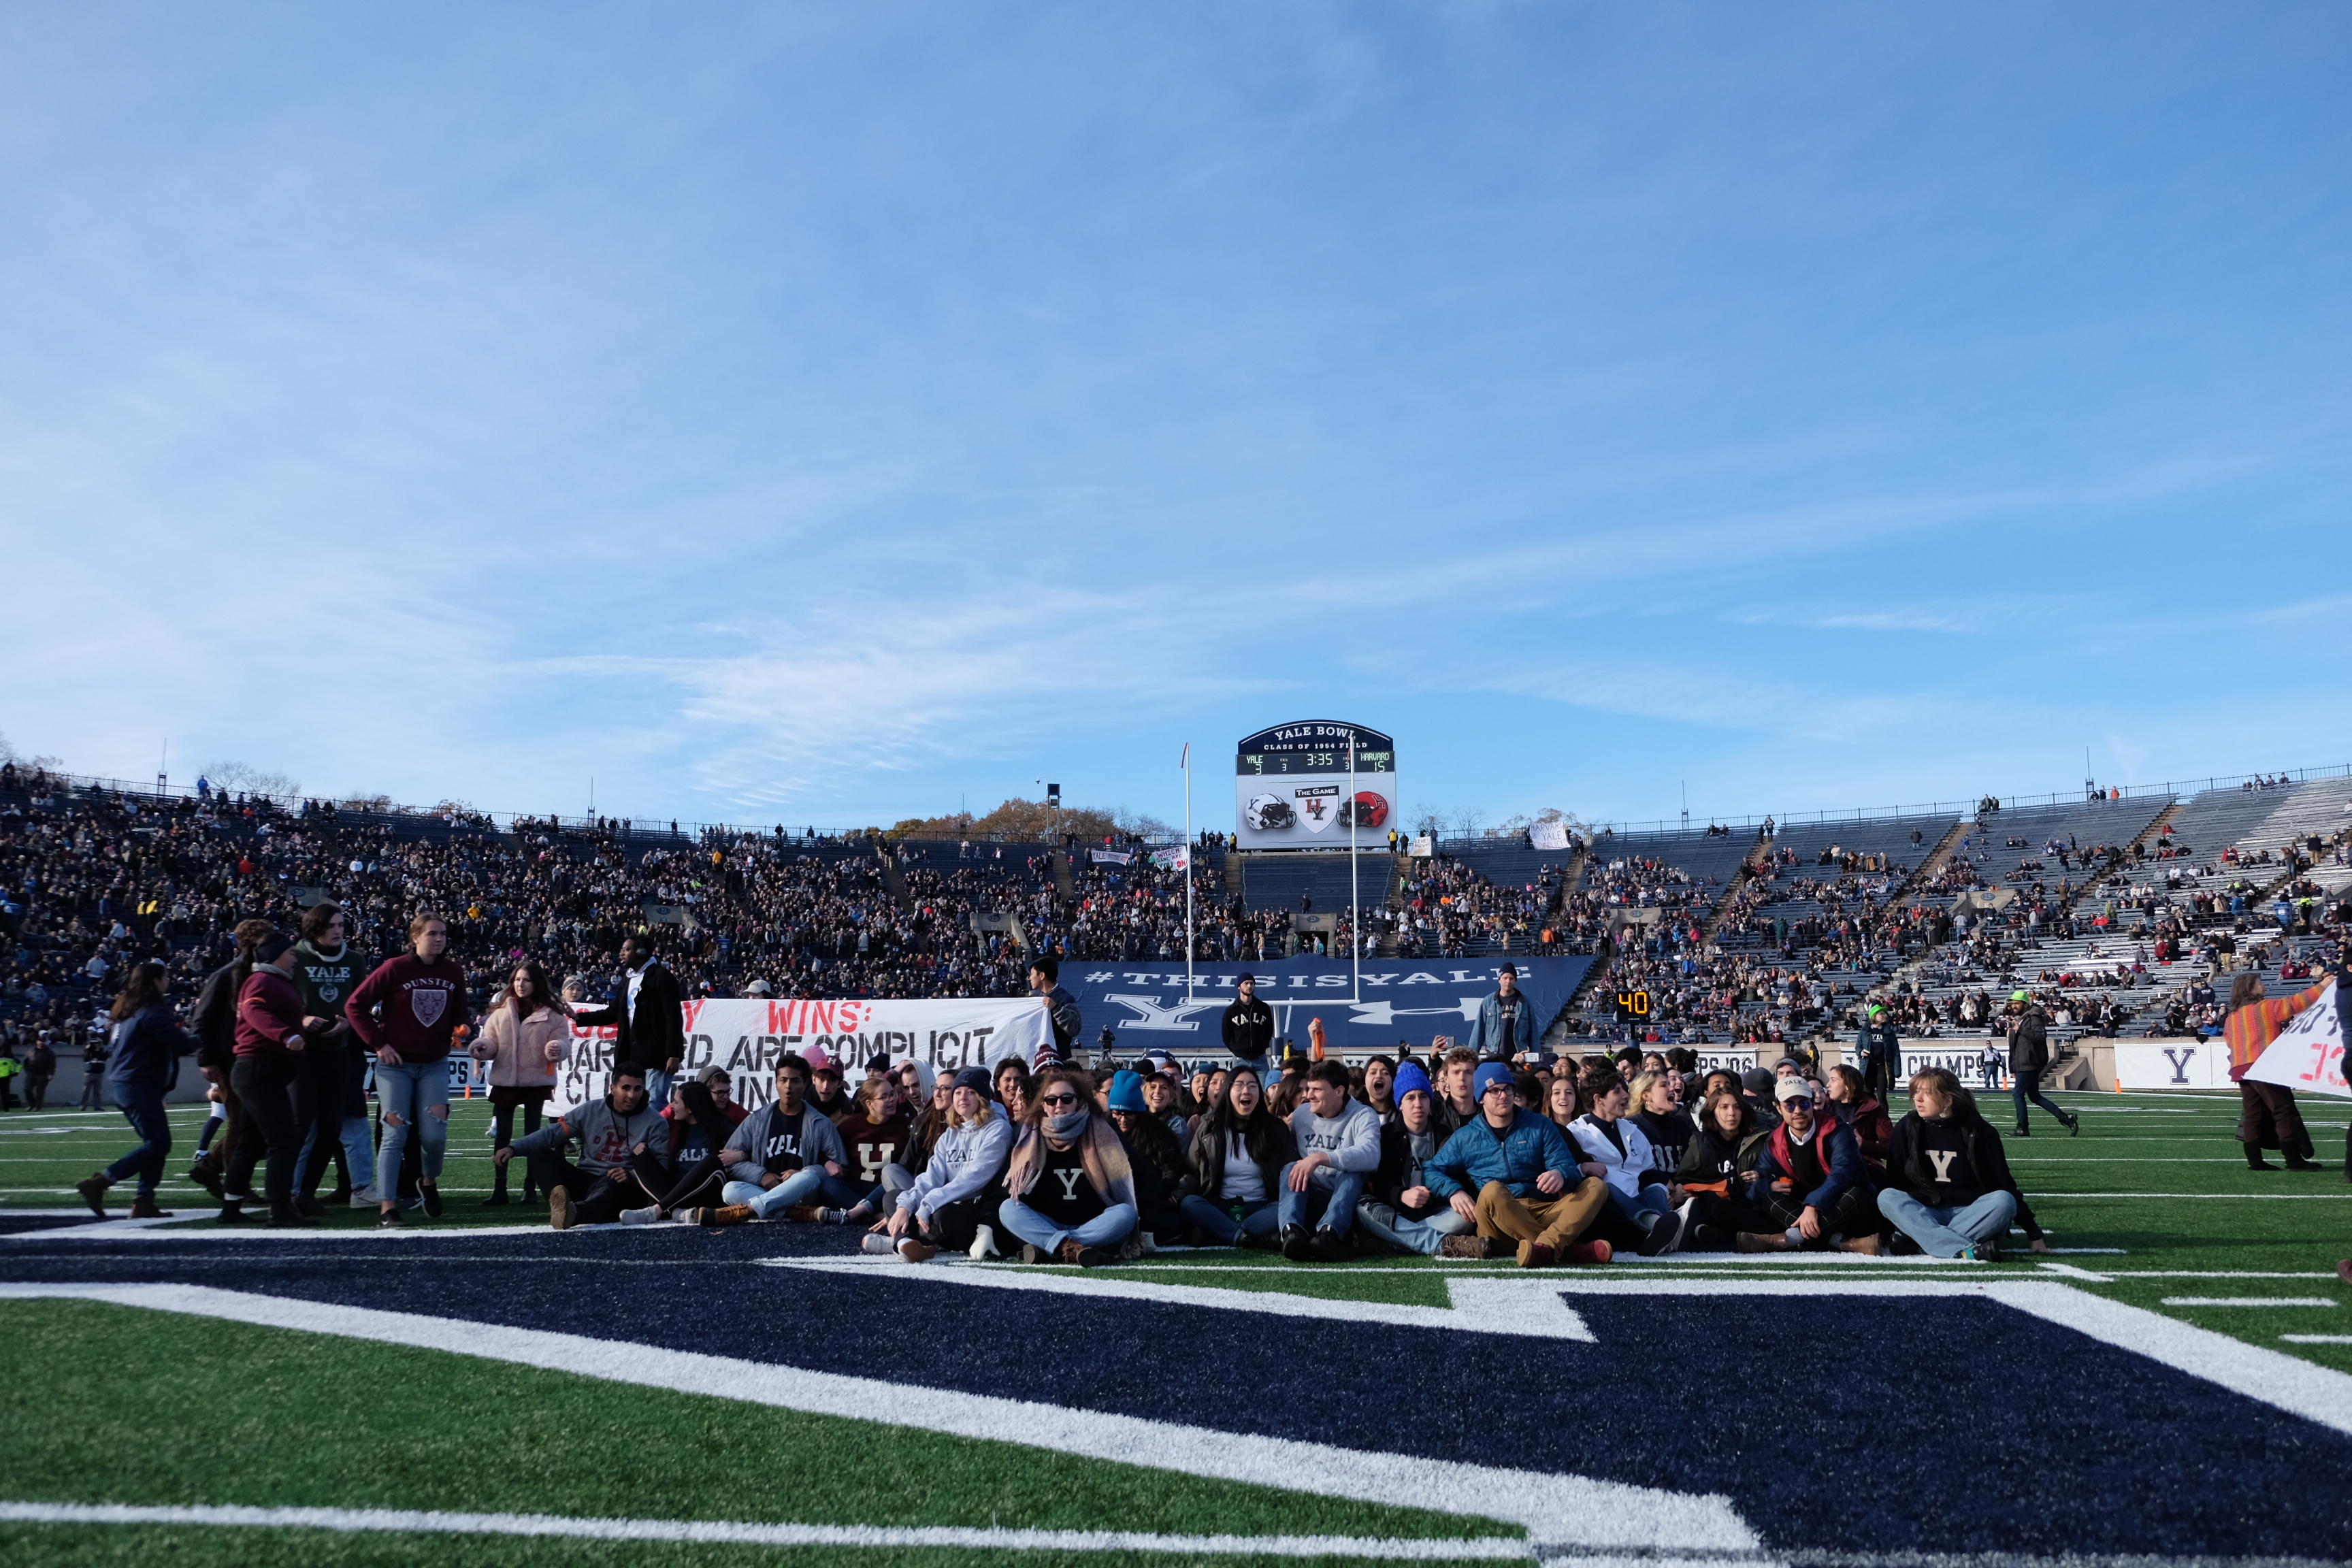 Climate activists brought Harvard-Yale football game to a stop to protest fossil fuel investments